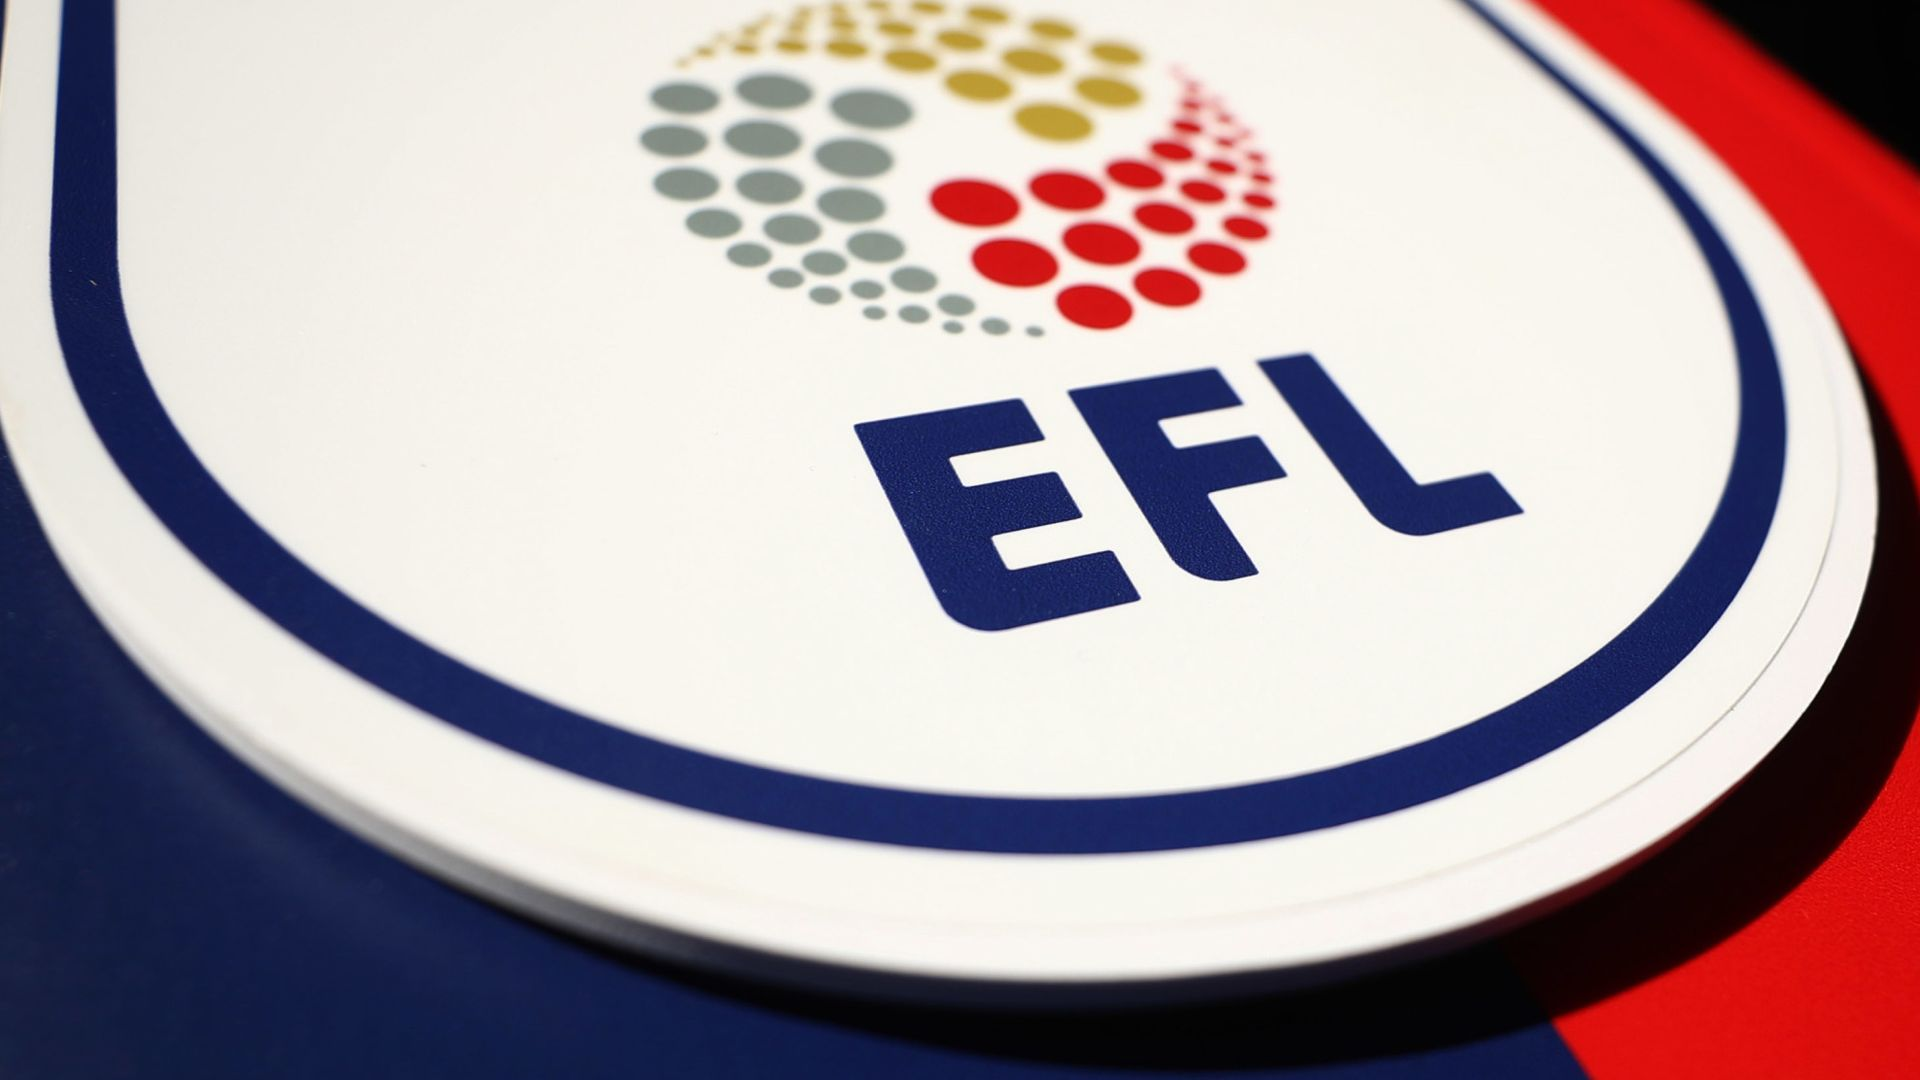 League Two clubs vote to end season early